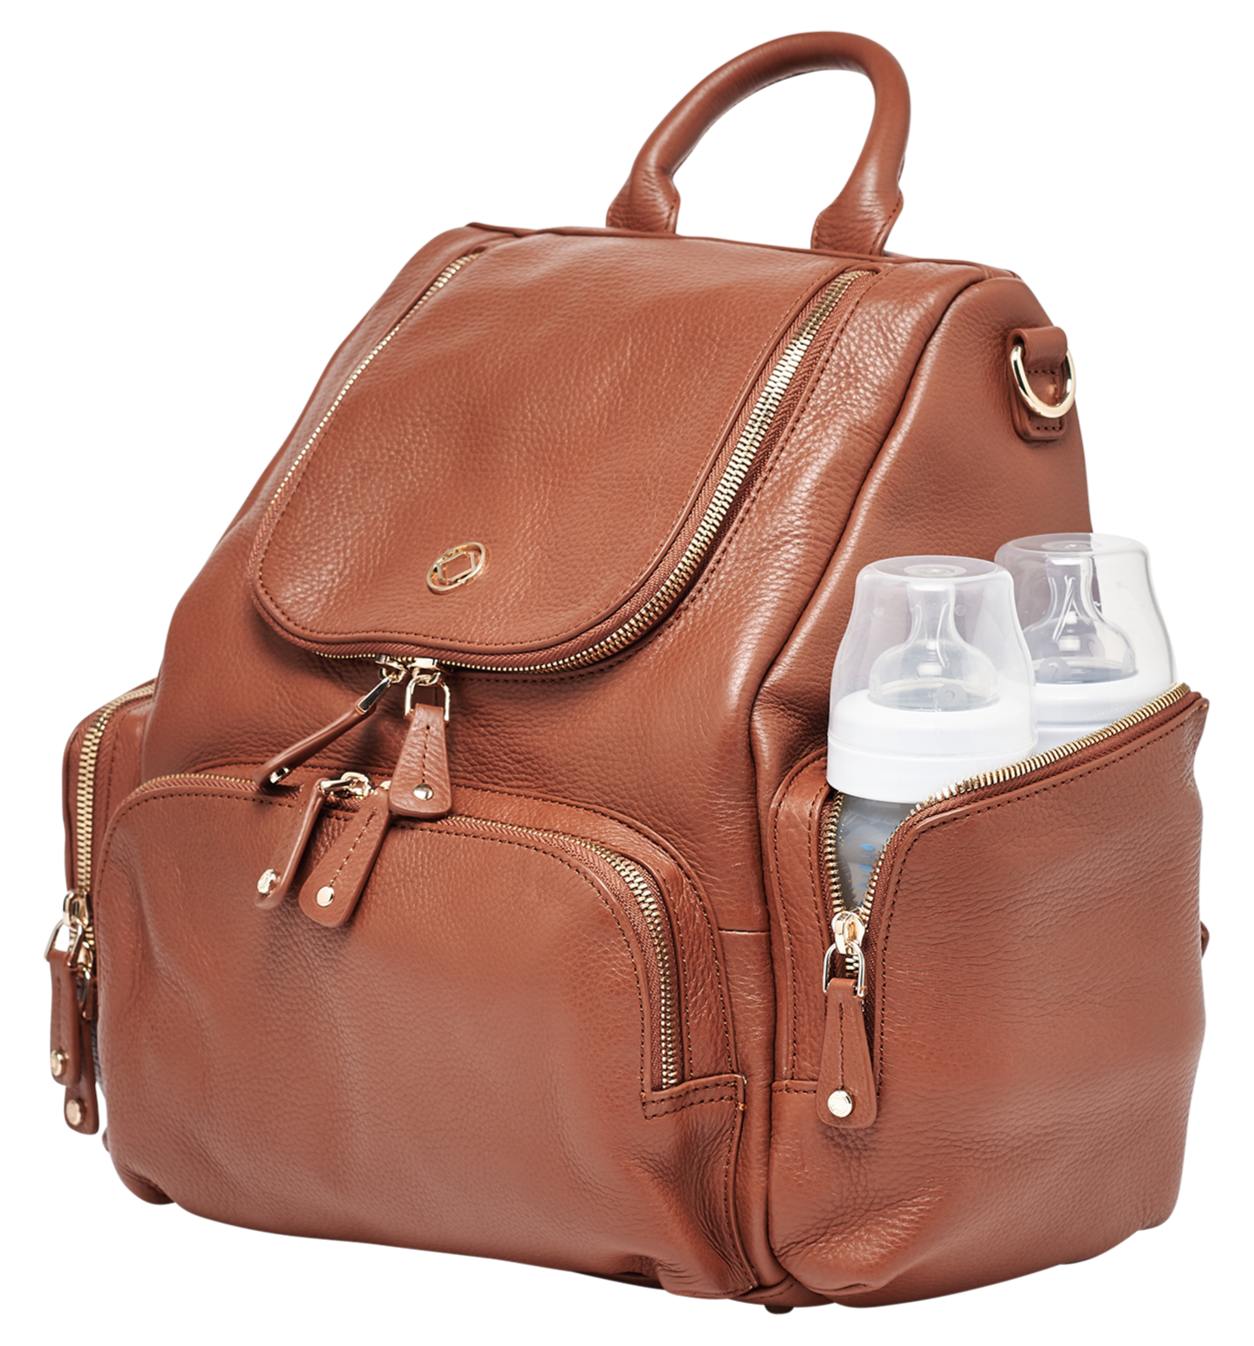 Luxury designer Amber Midi Tan leather organiser baby changing backpack